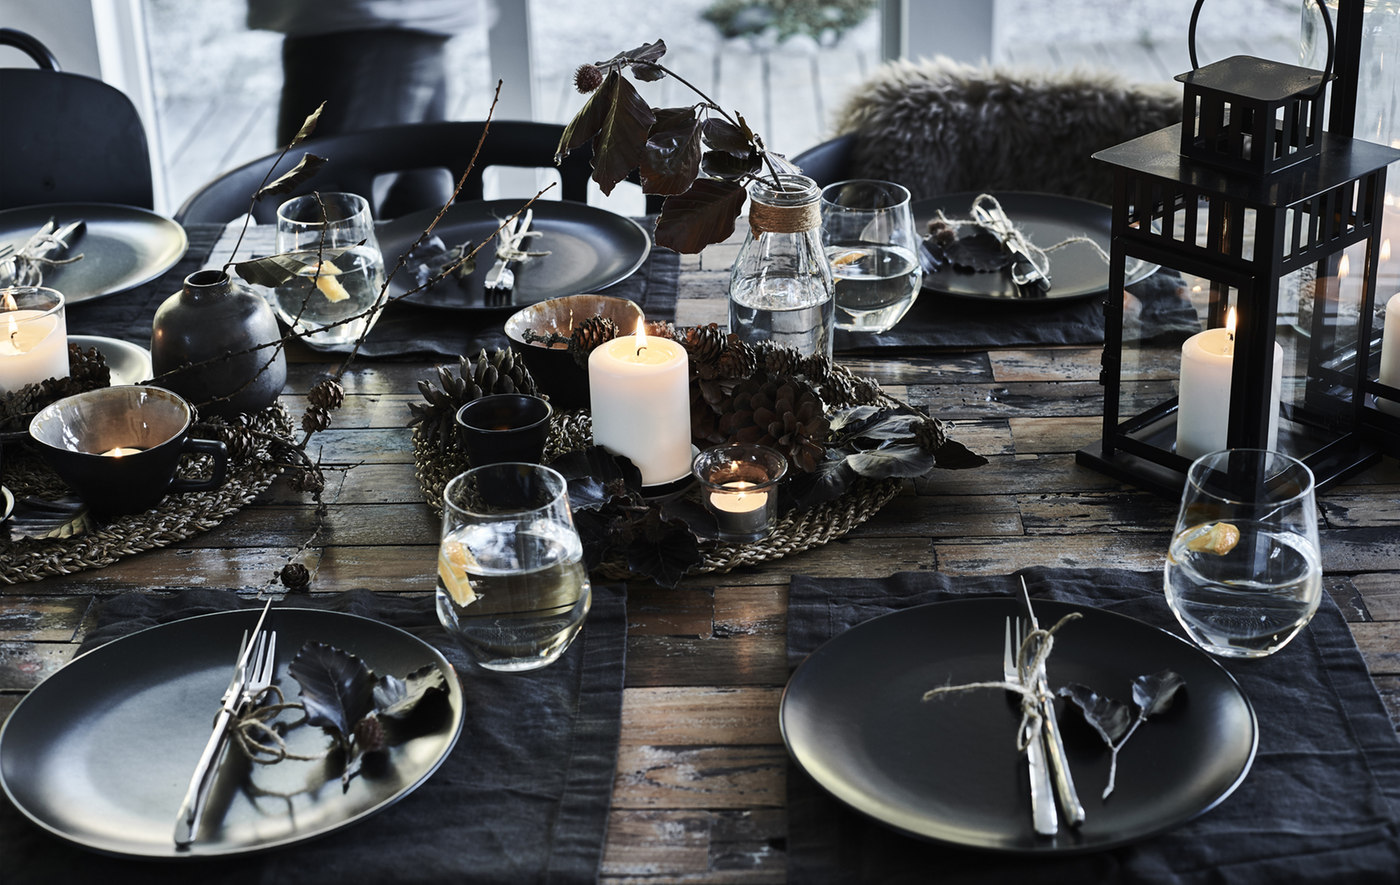 Home visit: winter table setting of foraged finds